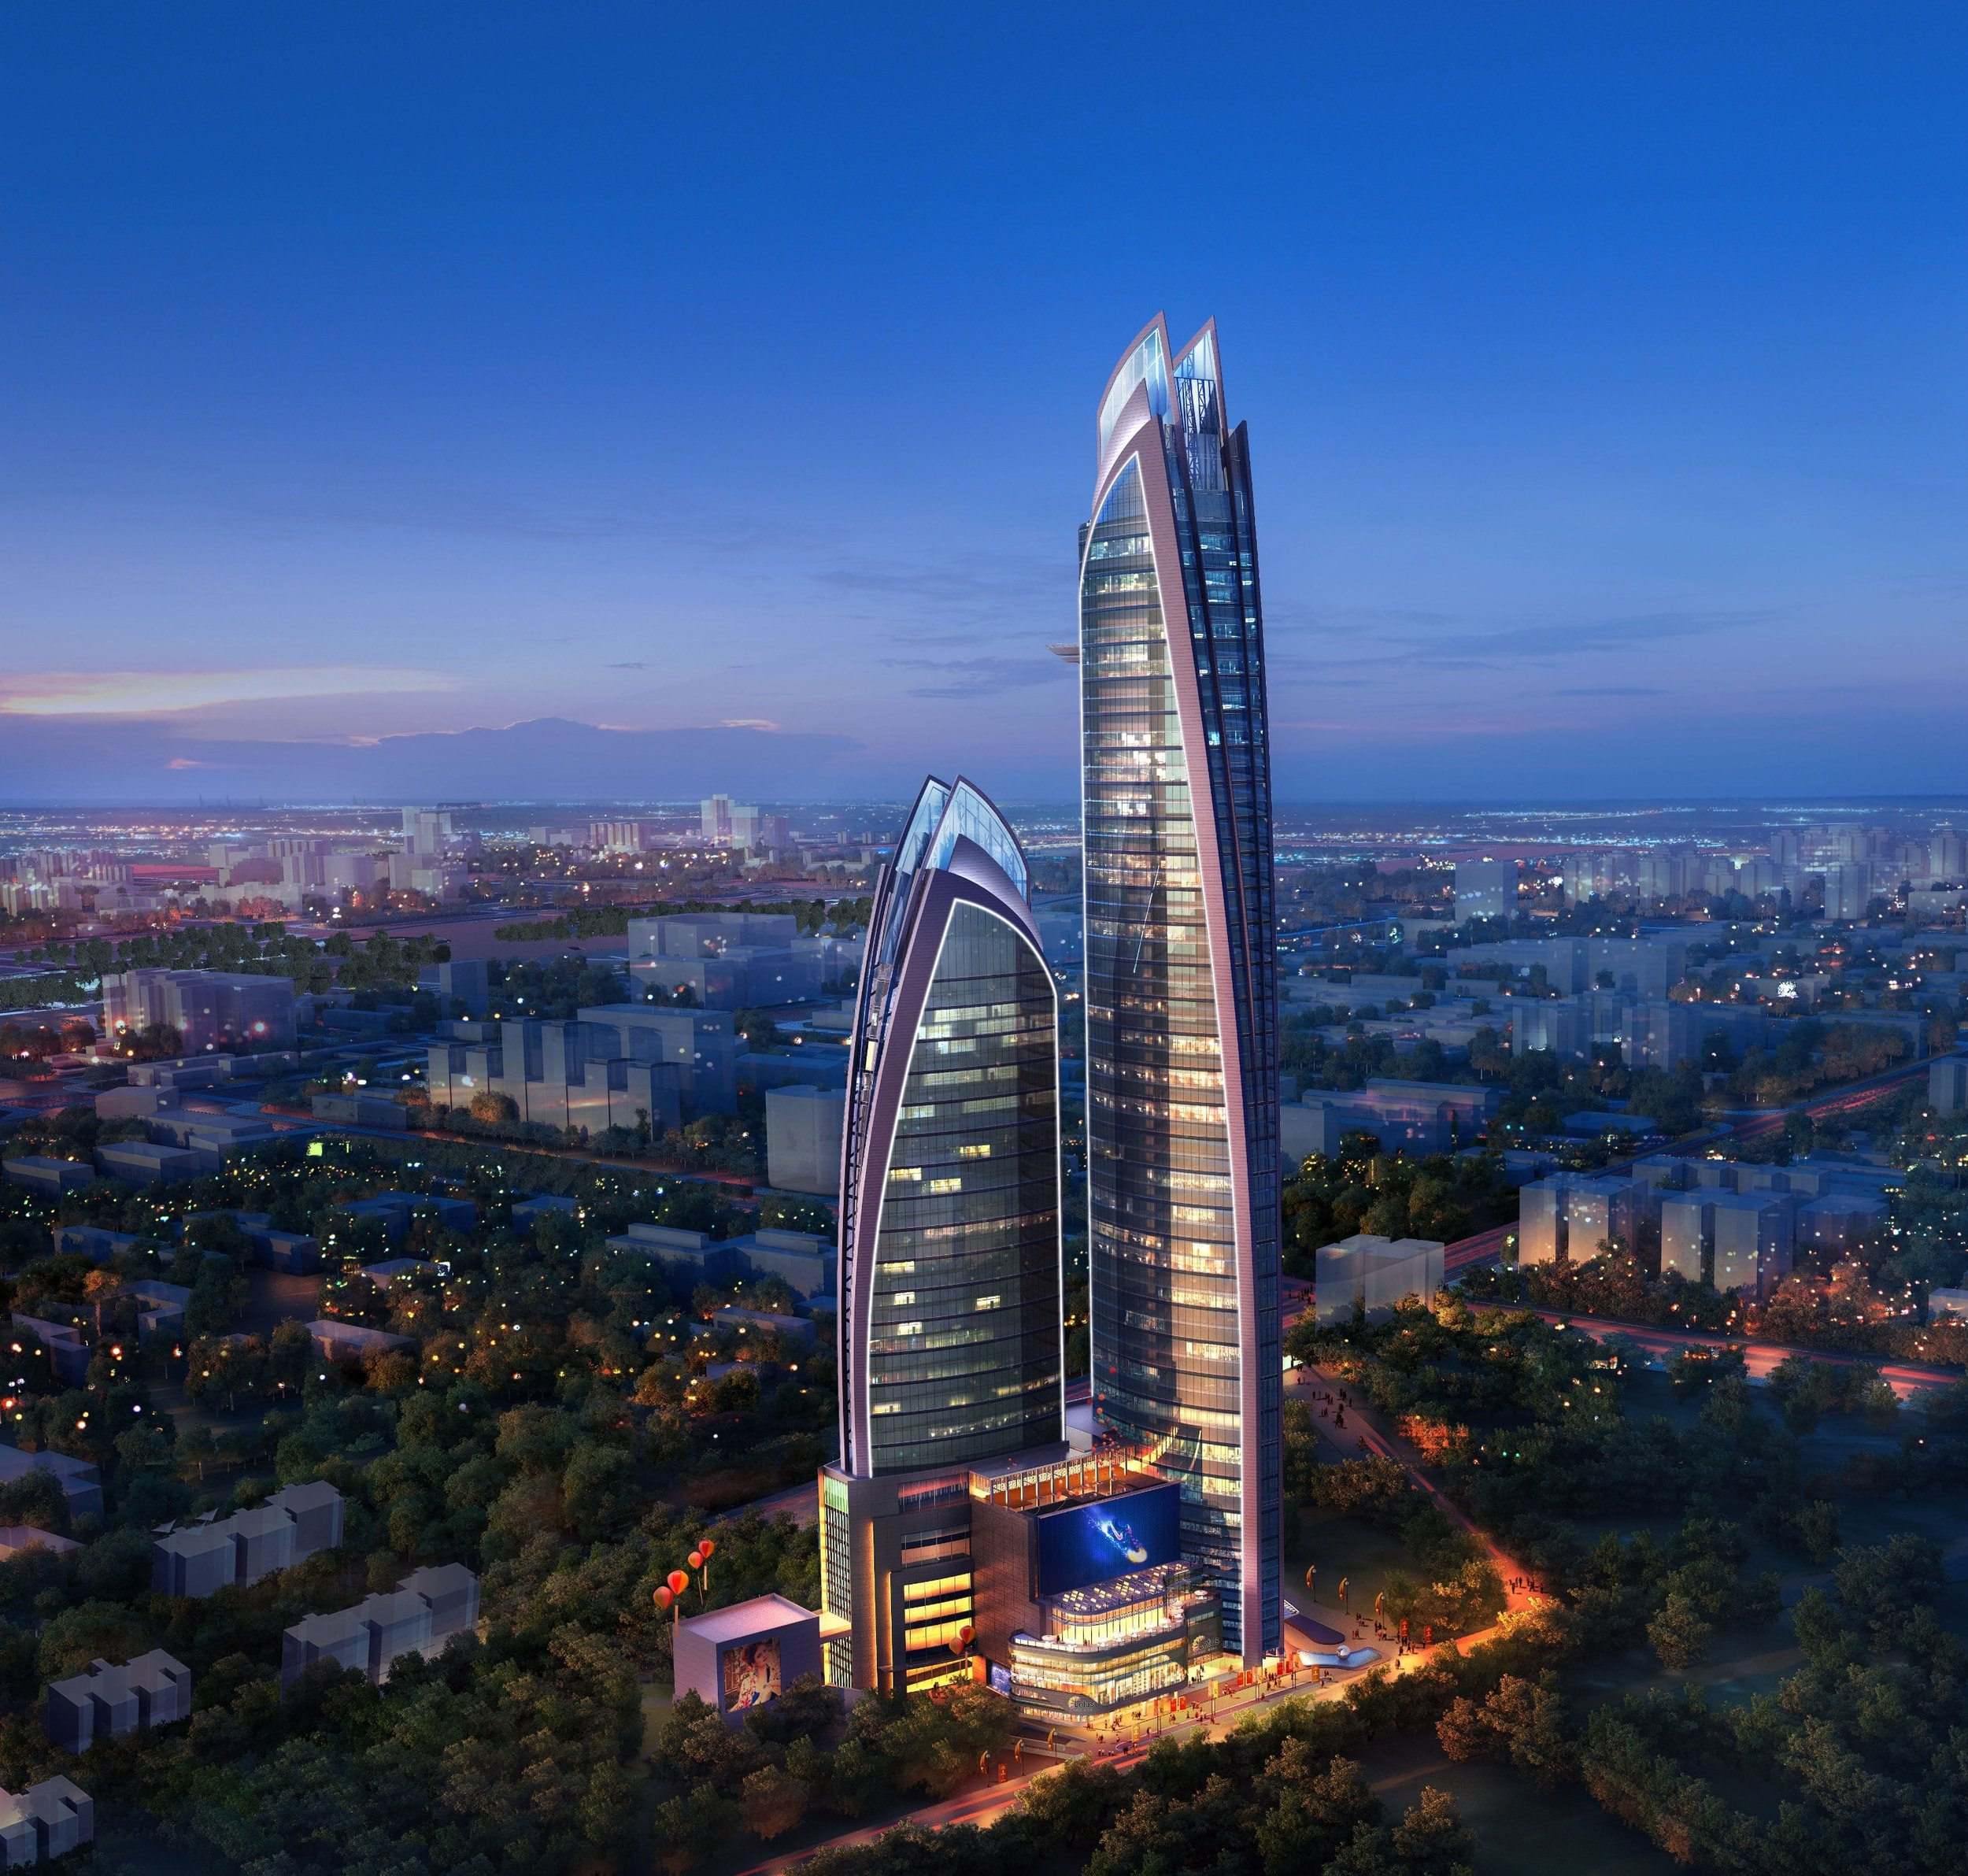 OPENS Q1-2020  Our second project in Nairobi and a continuation of GlassQube's MENA portfolio expansion. This upcoming project is located in Nairobi's most luxurious, sought after office tower.